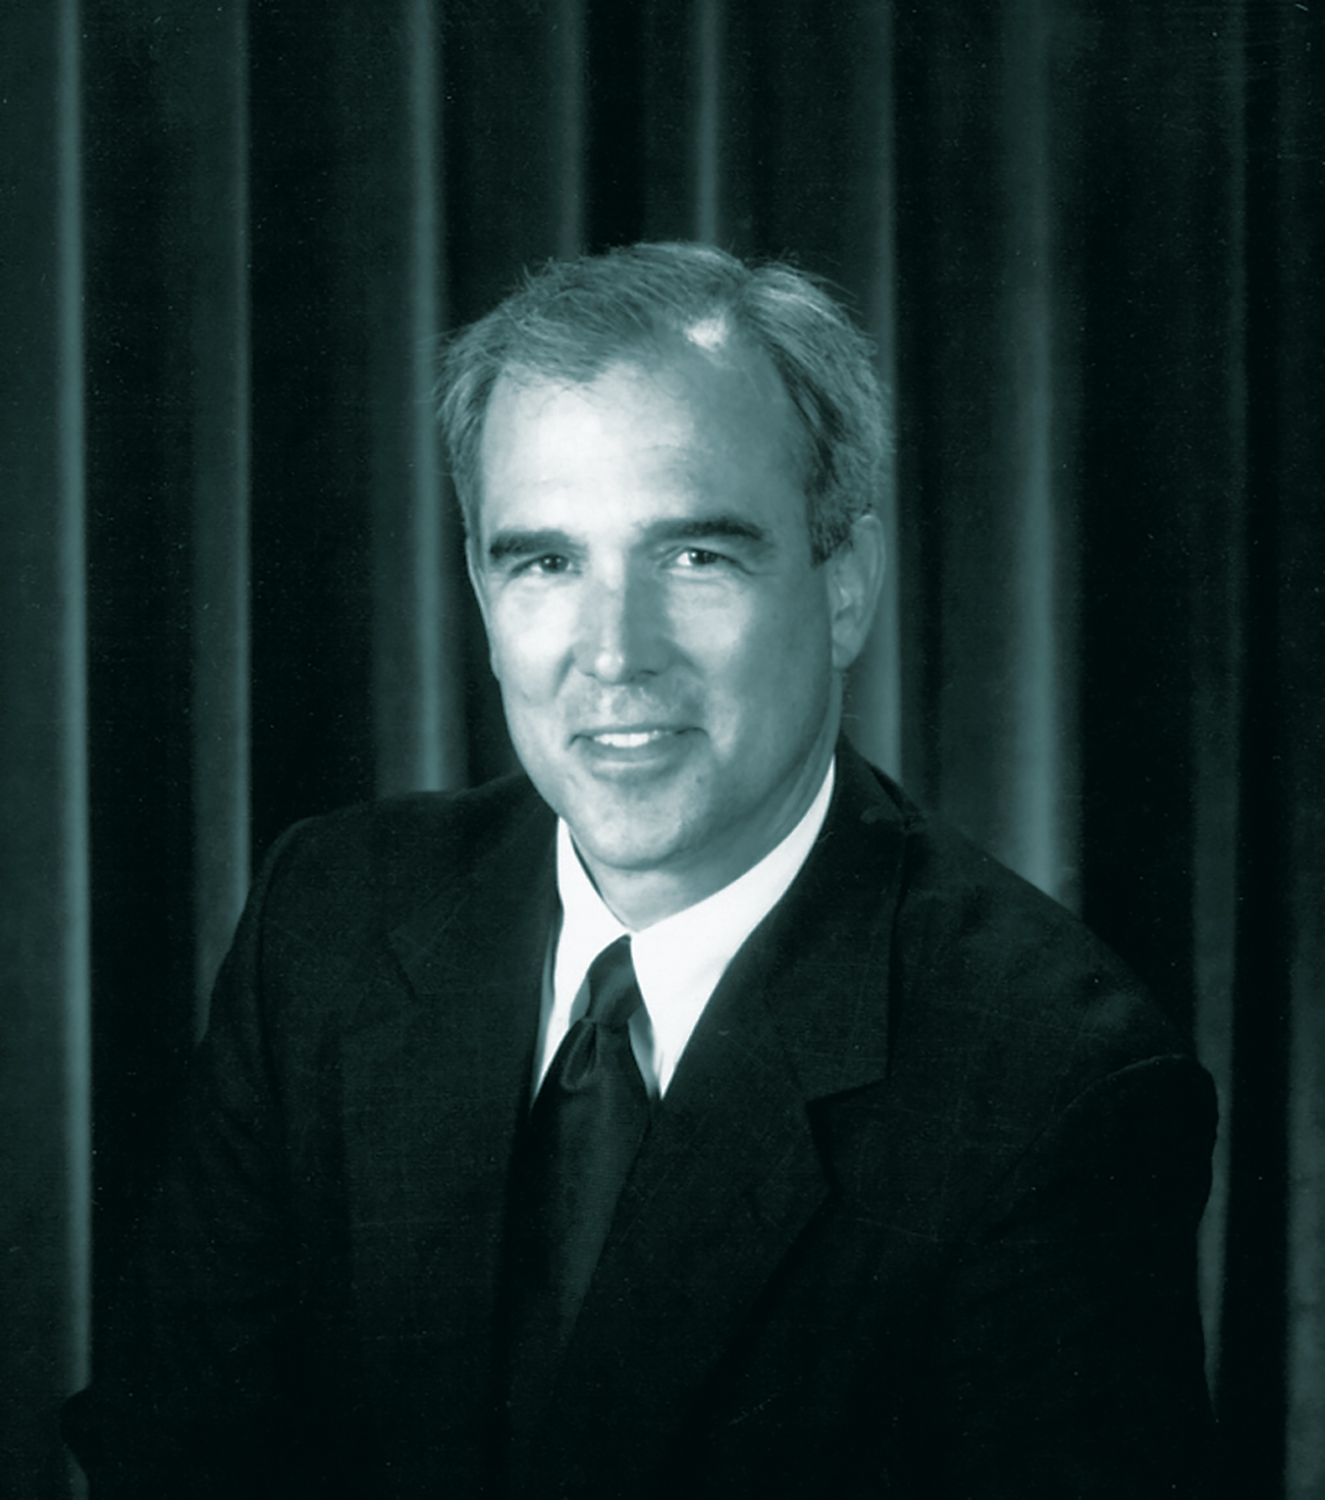 Judge Michael W. Mosman